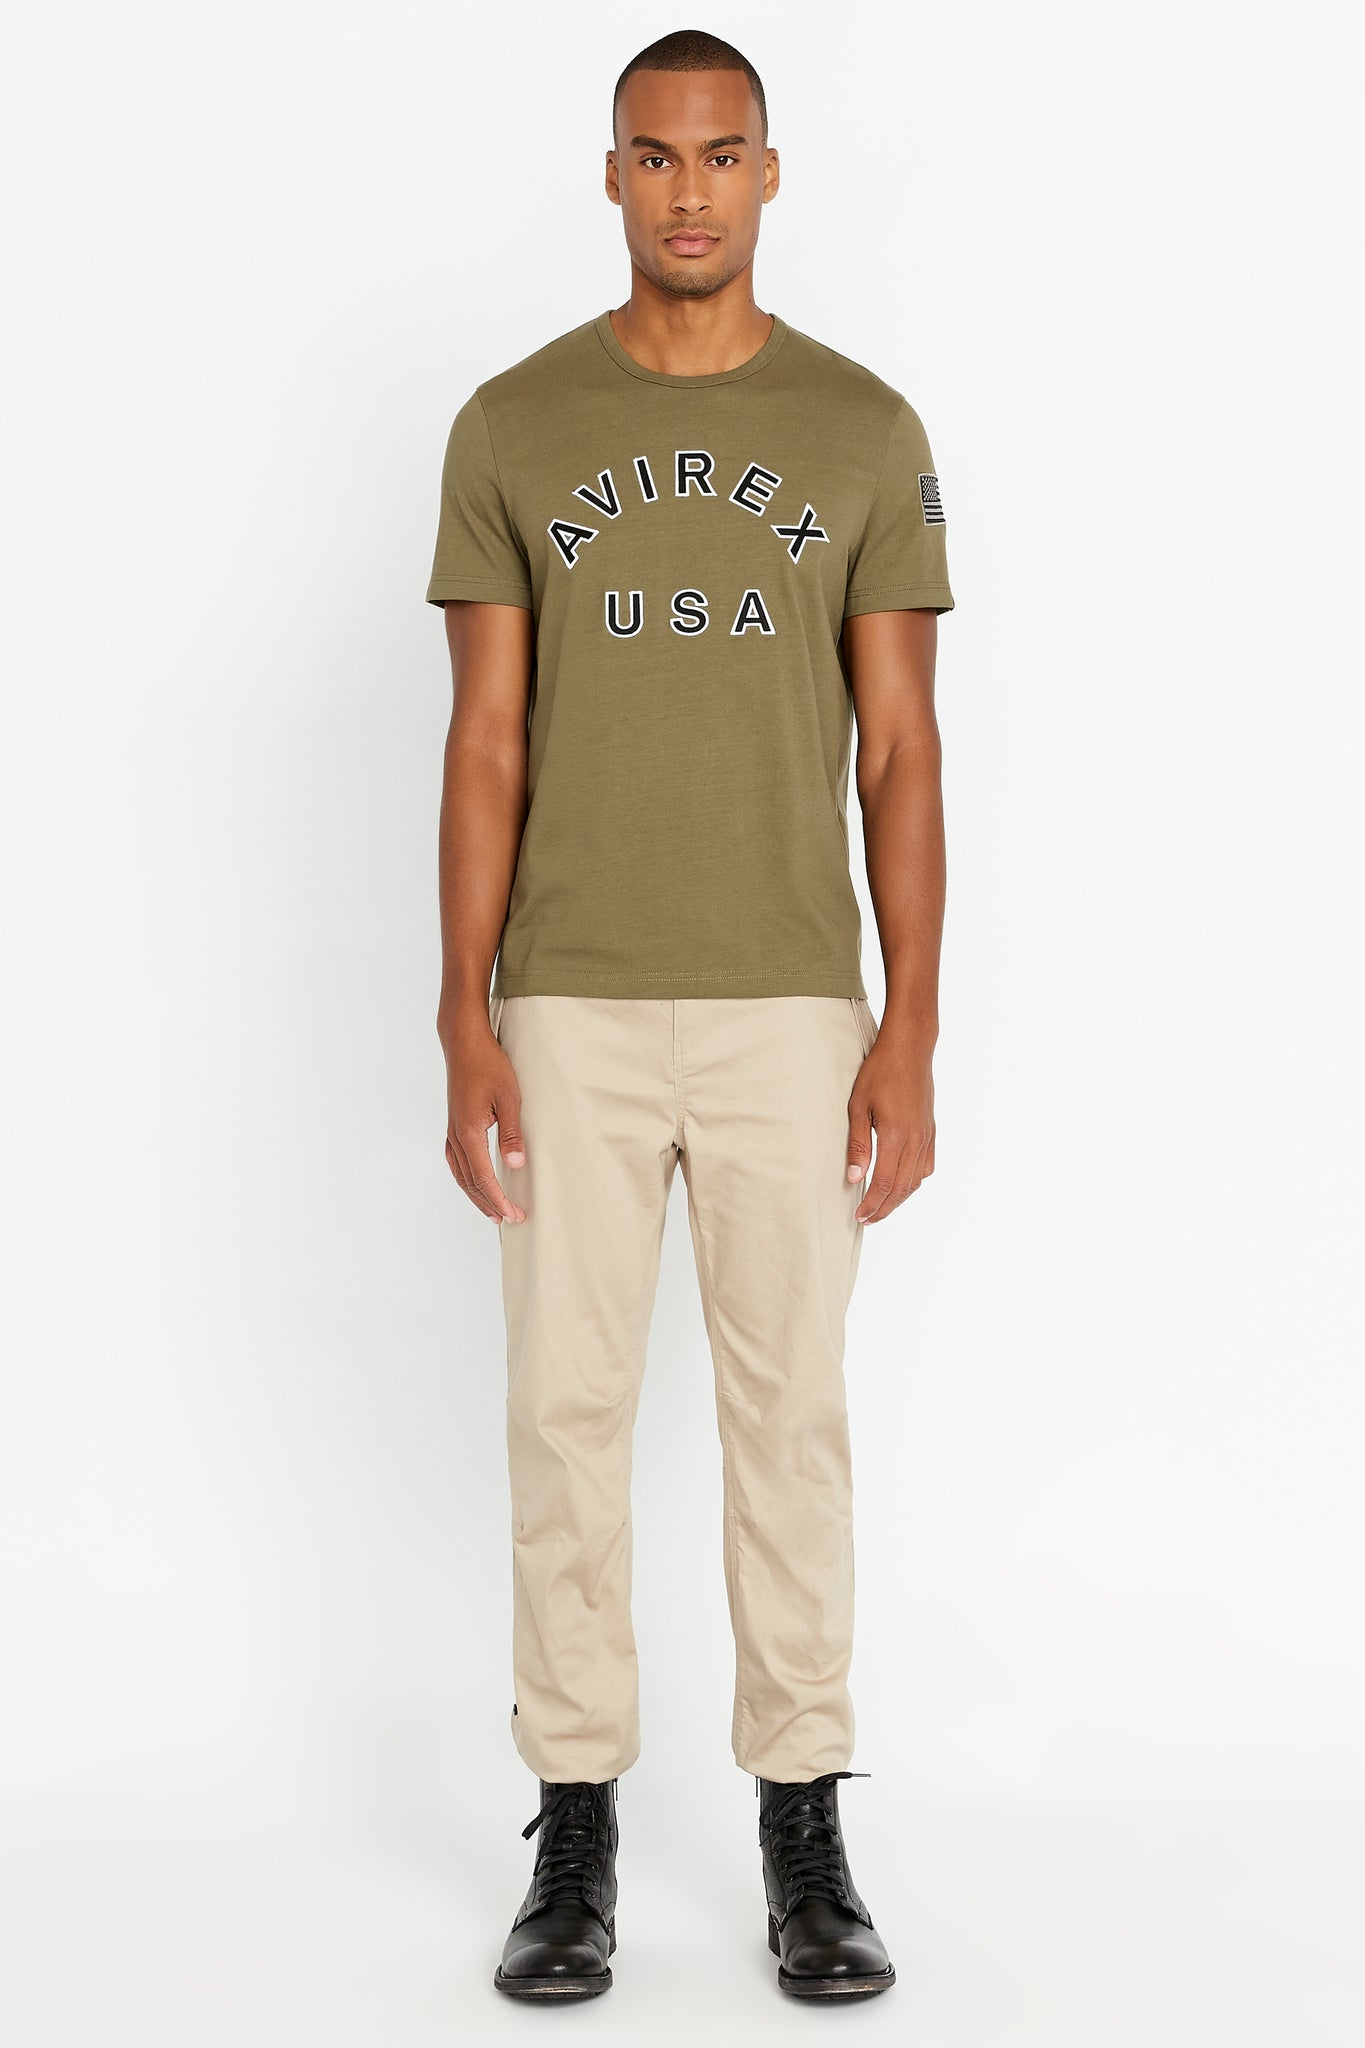 Full view of men wearing an olive short sleeve crew T-shirt with bold logo across the front saying Avirex USA and a patch on left sleeve and light beige pants